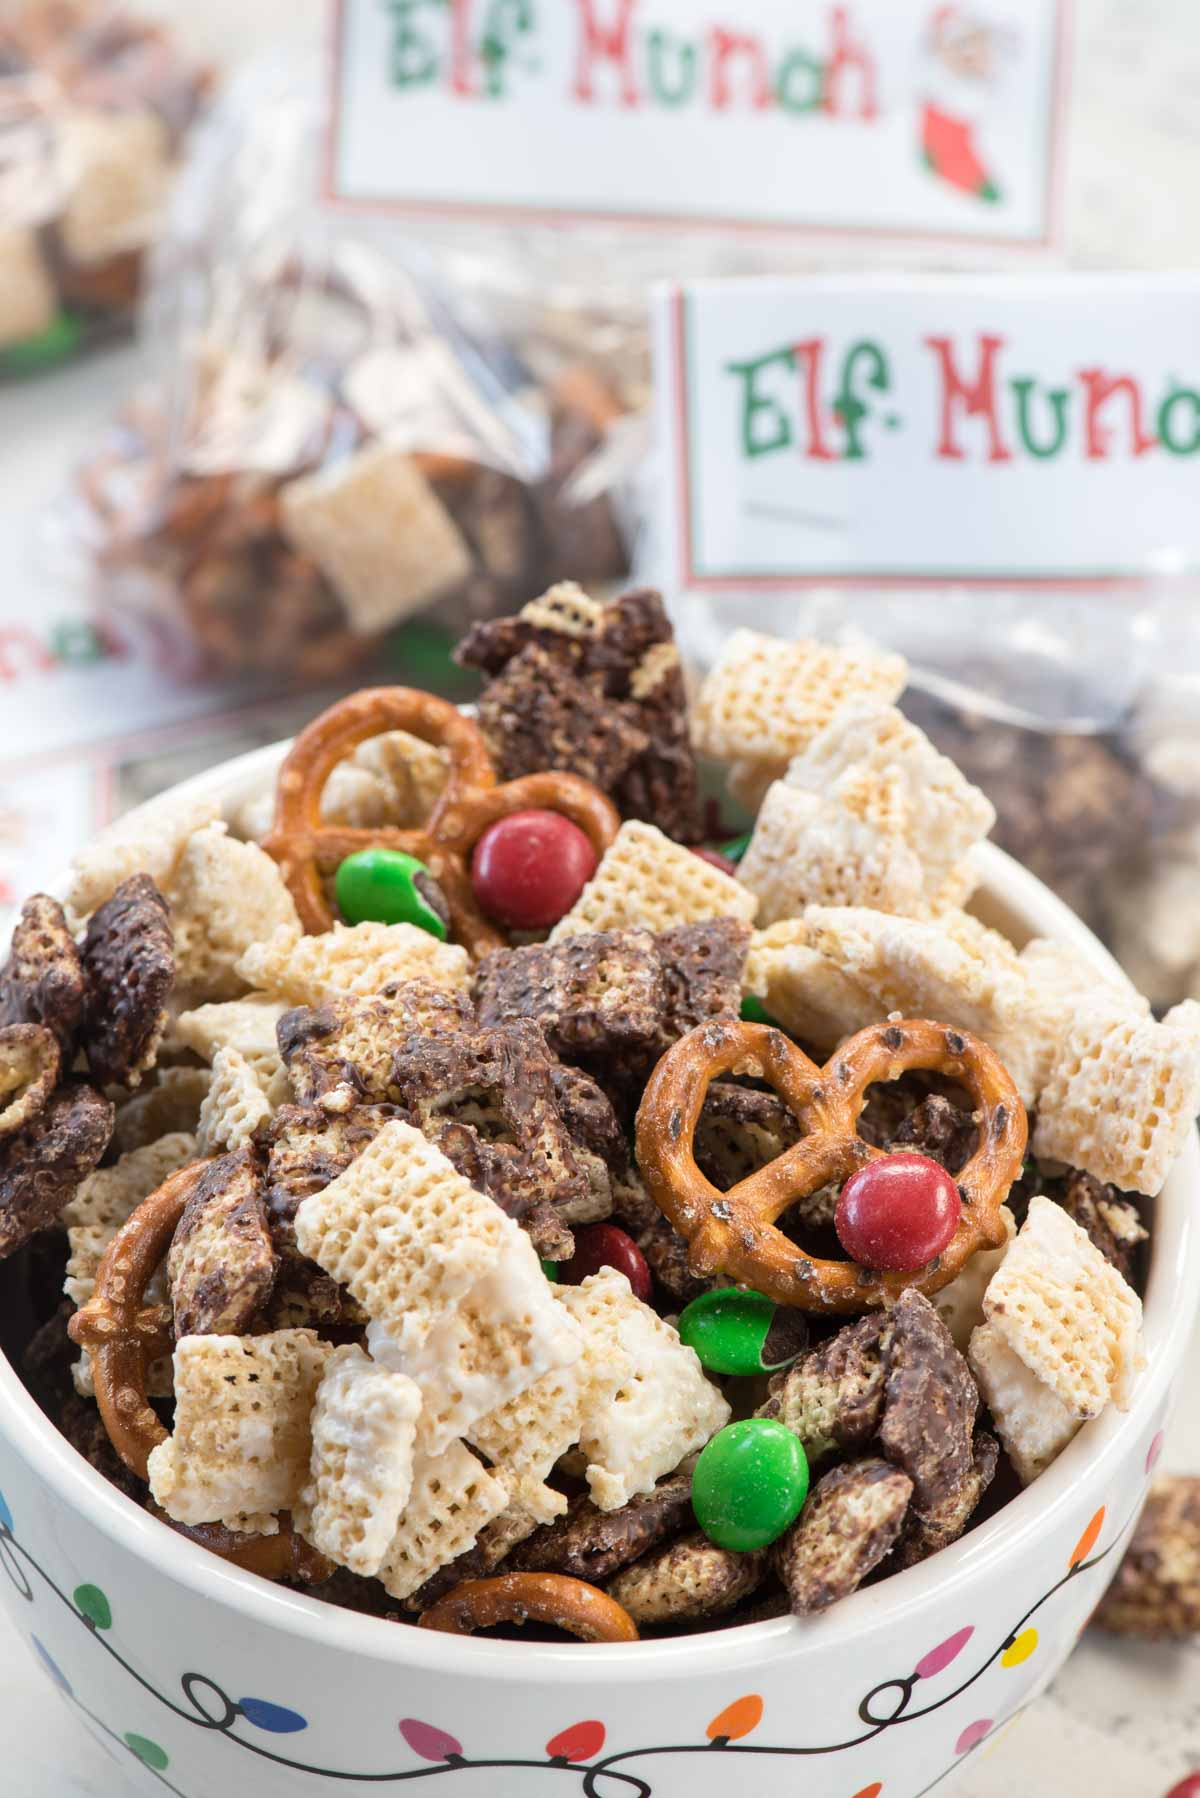 Elf Munch Snack Mix (Free Printable)